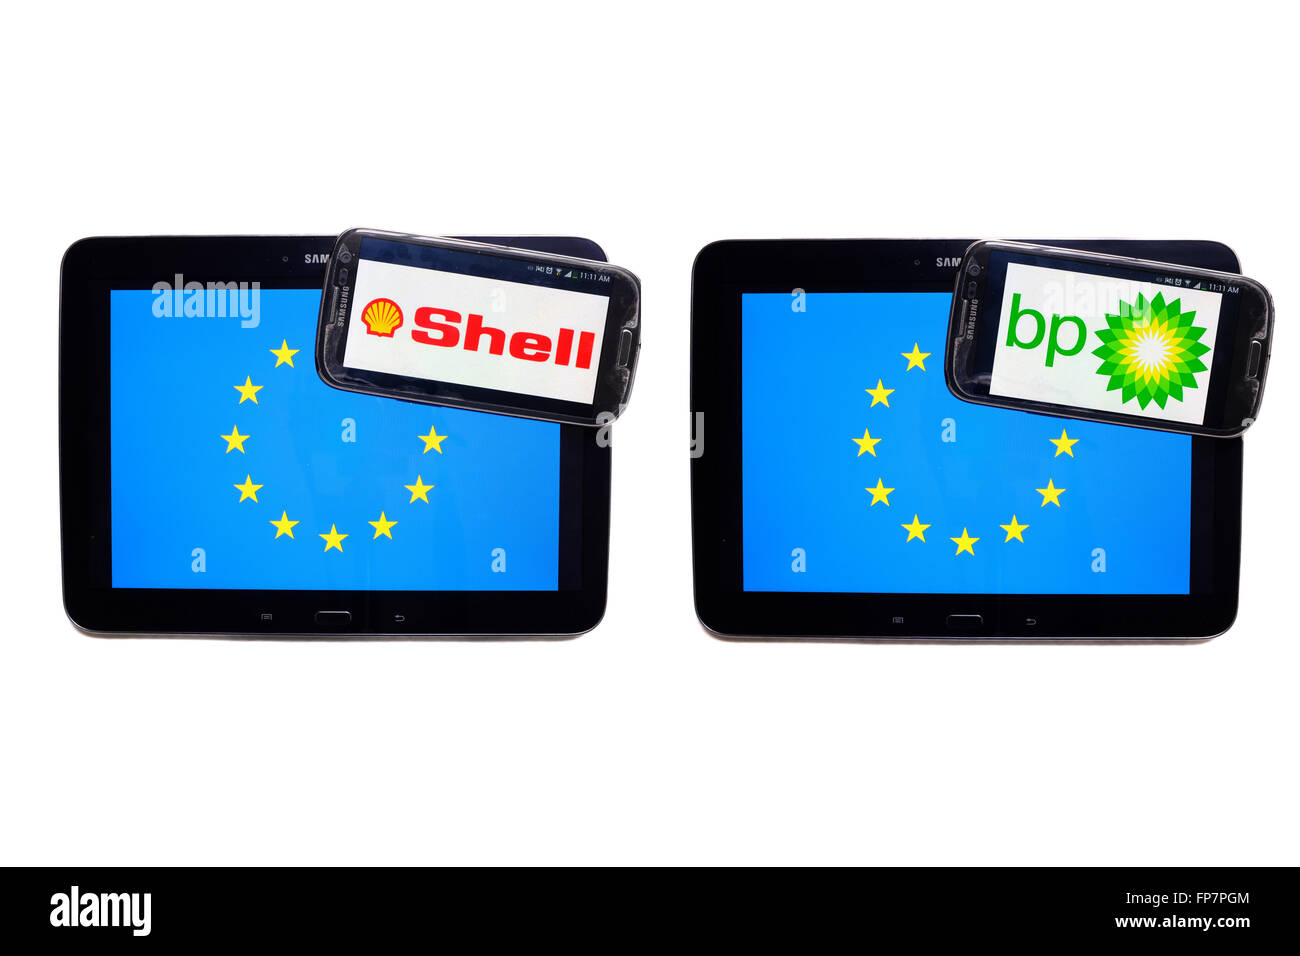 The logos of British petrol companies on the screens of smartphones displayed on top of the EU flag. - Stock Image